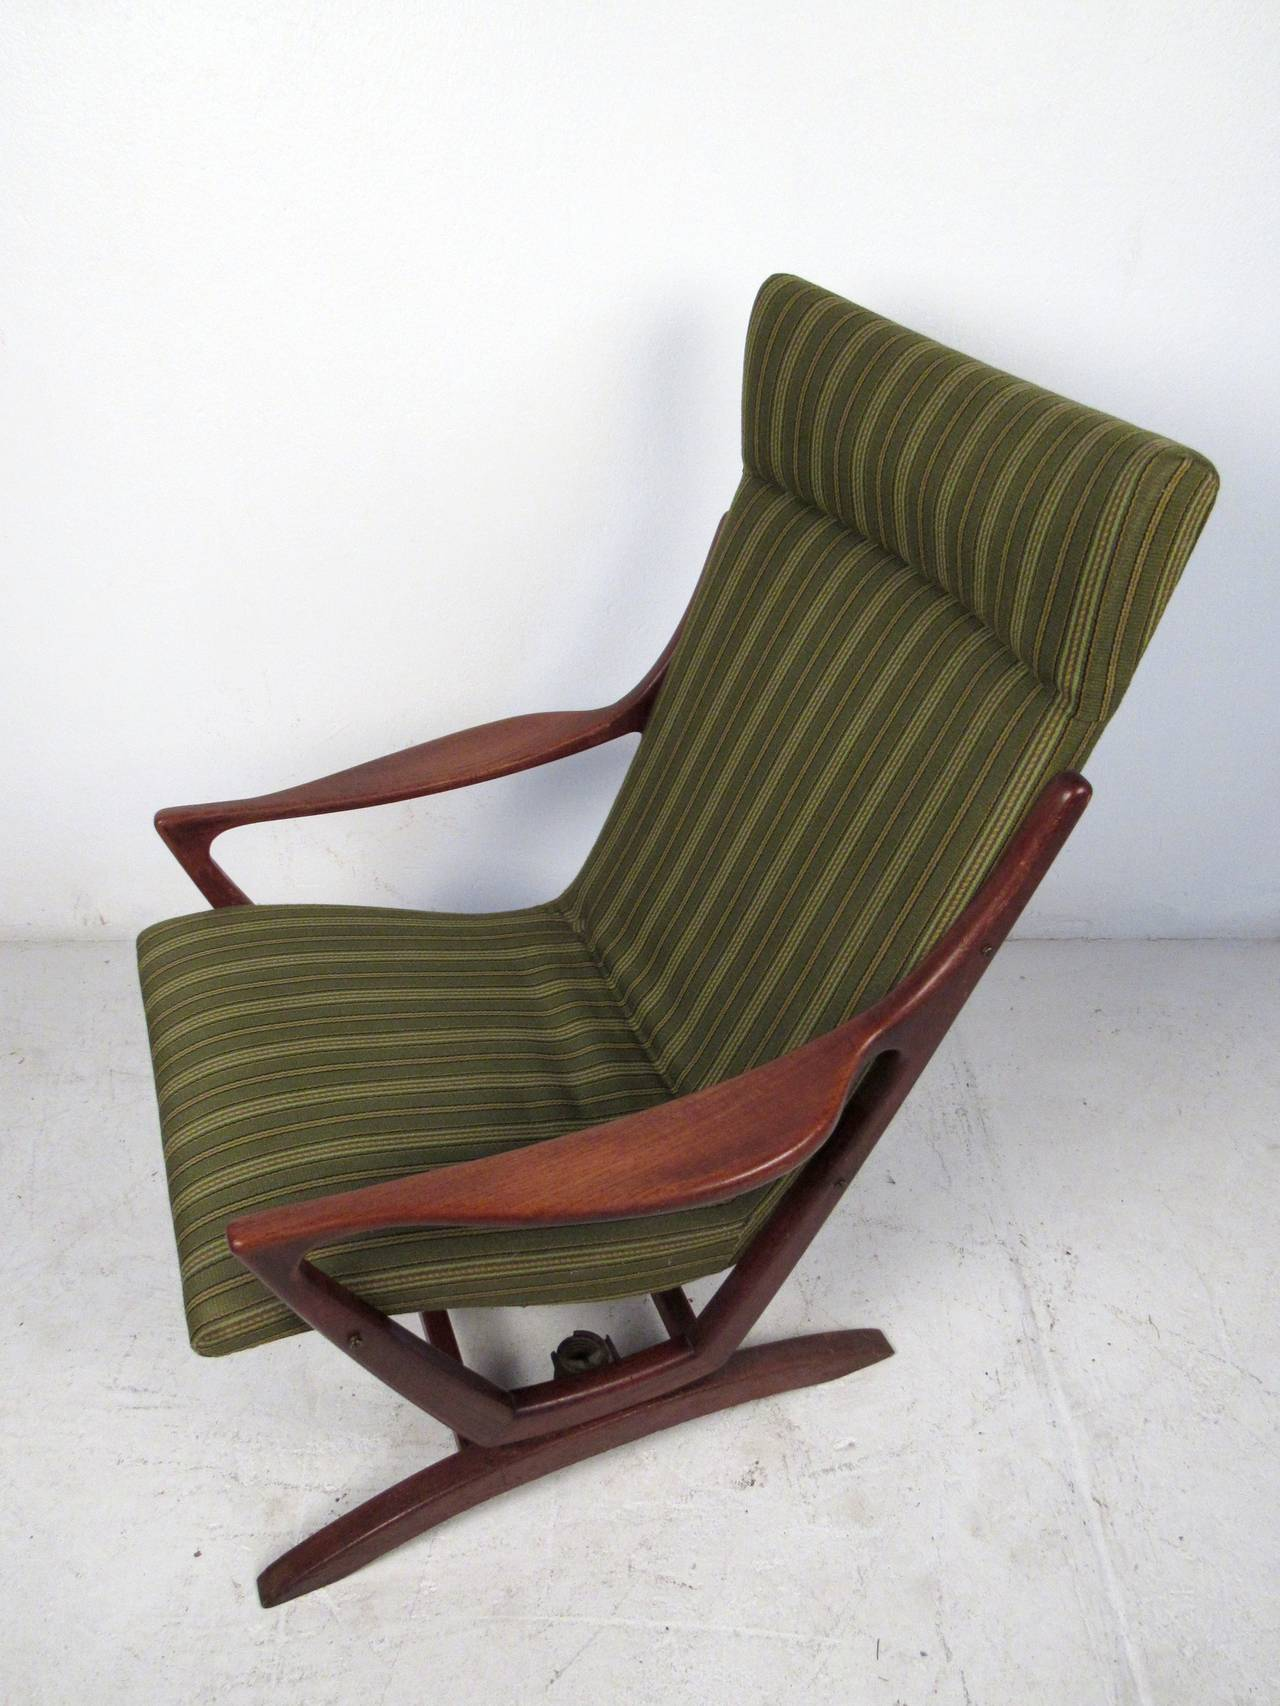 American Mid-Century Modern Rocking Chair For Sale